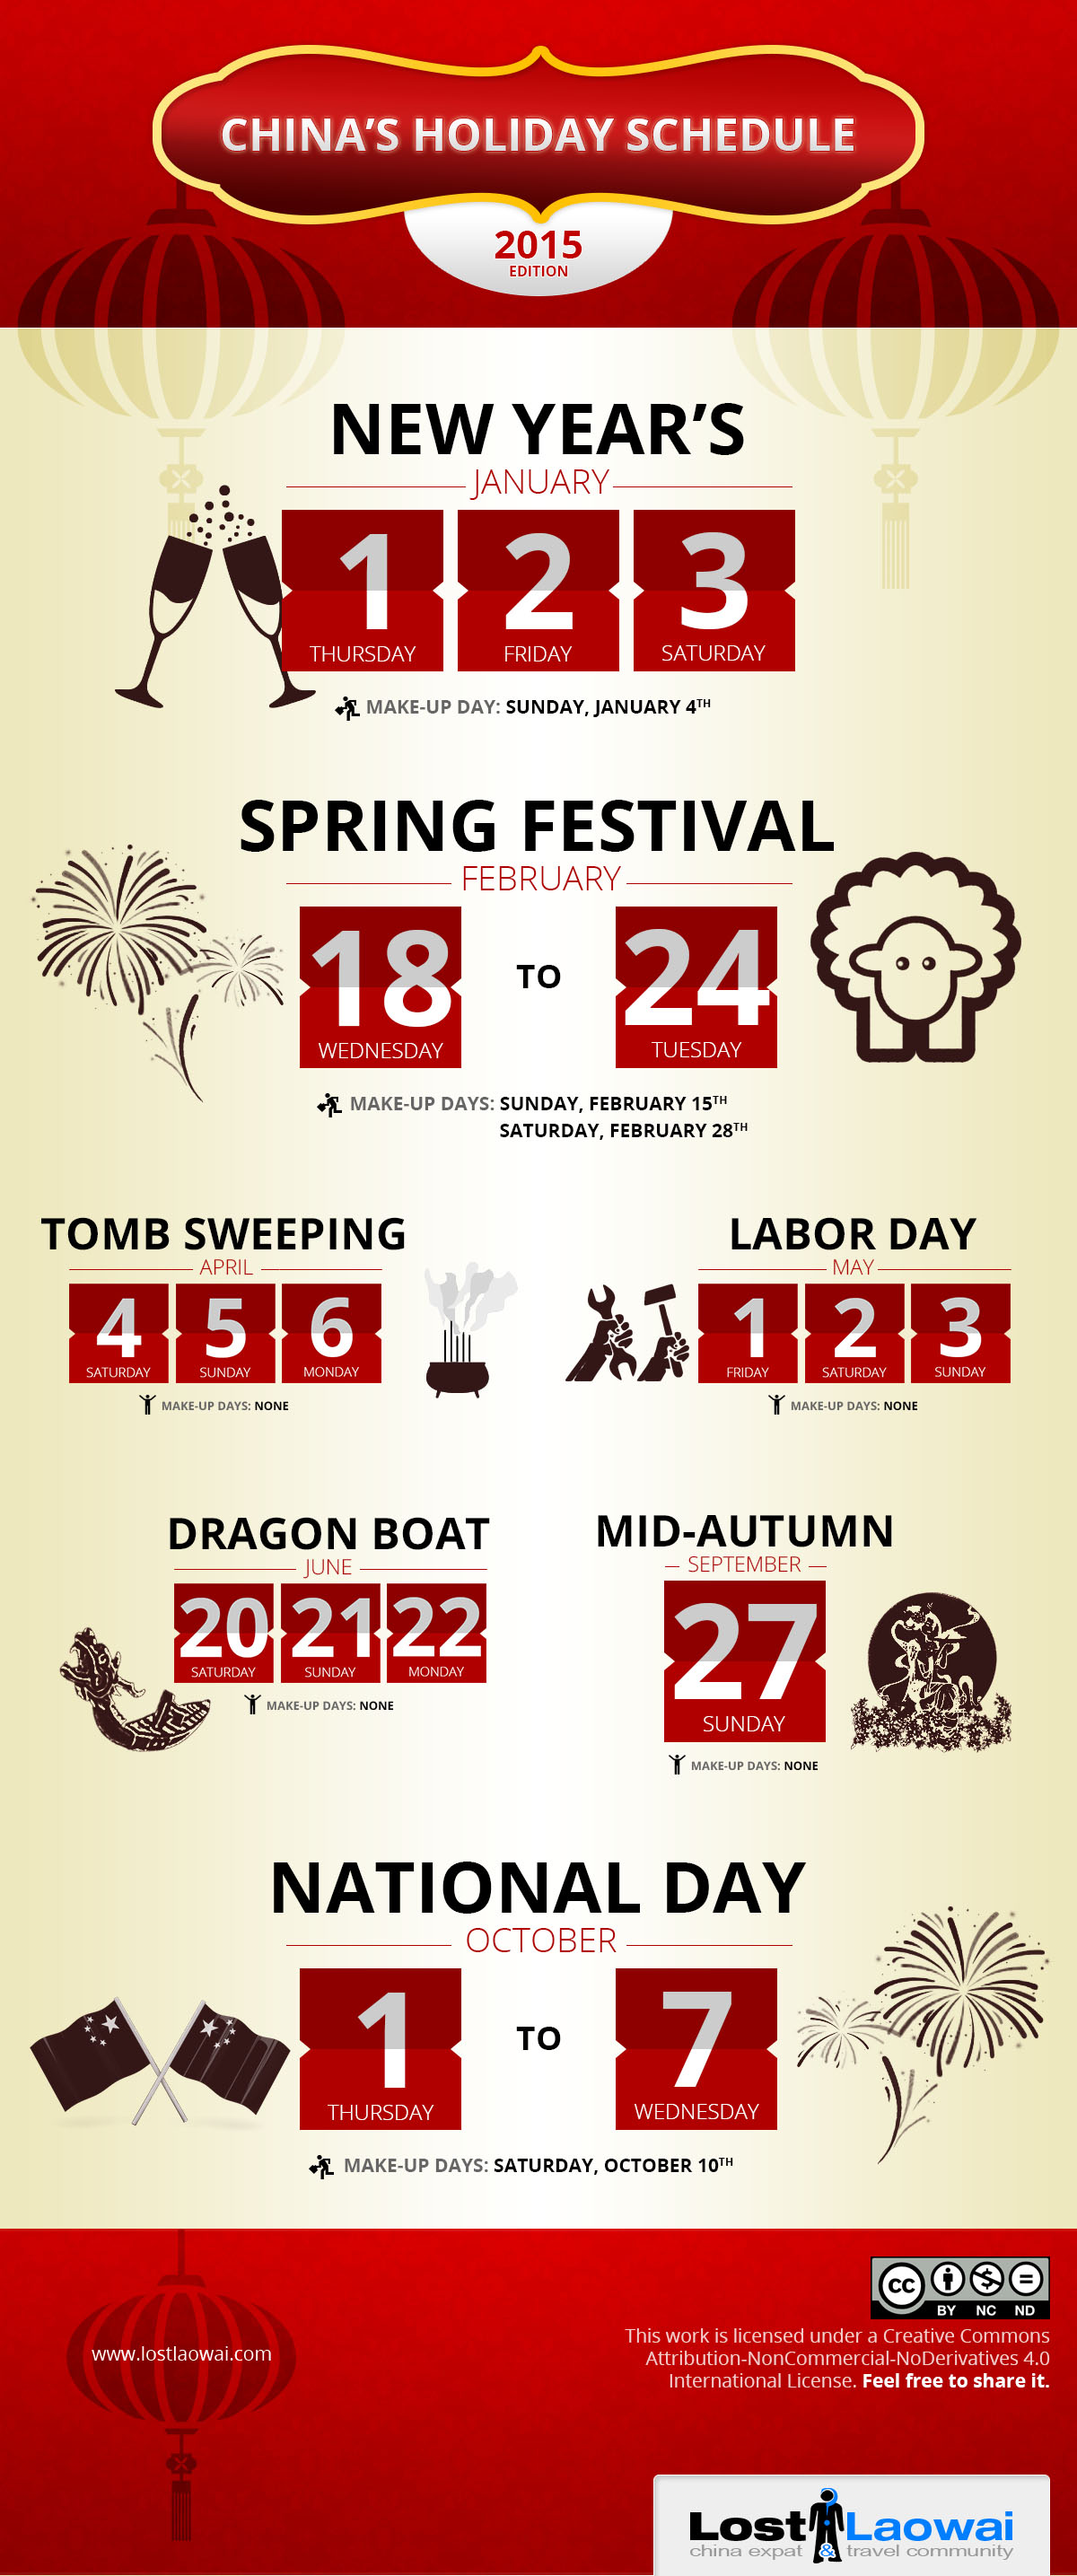 China Holiday Schedule 2015 Infograph by Lost Laowai